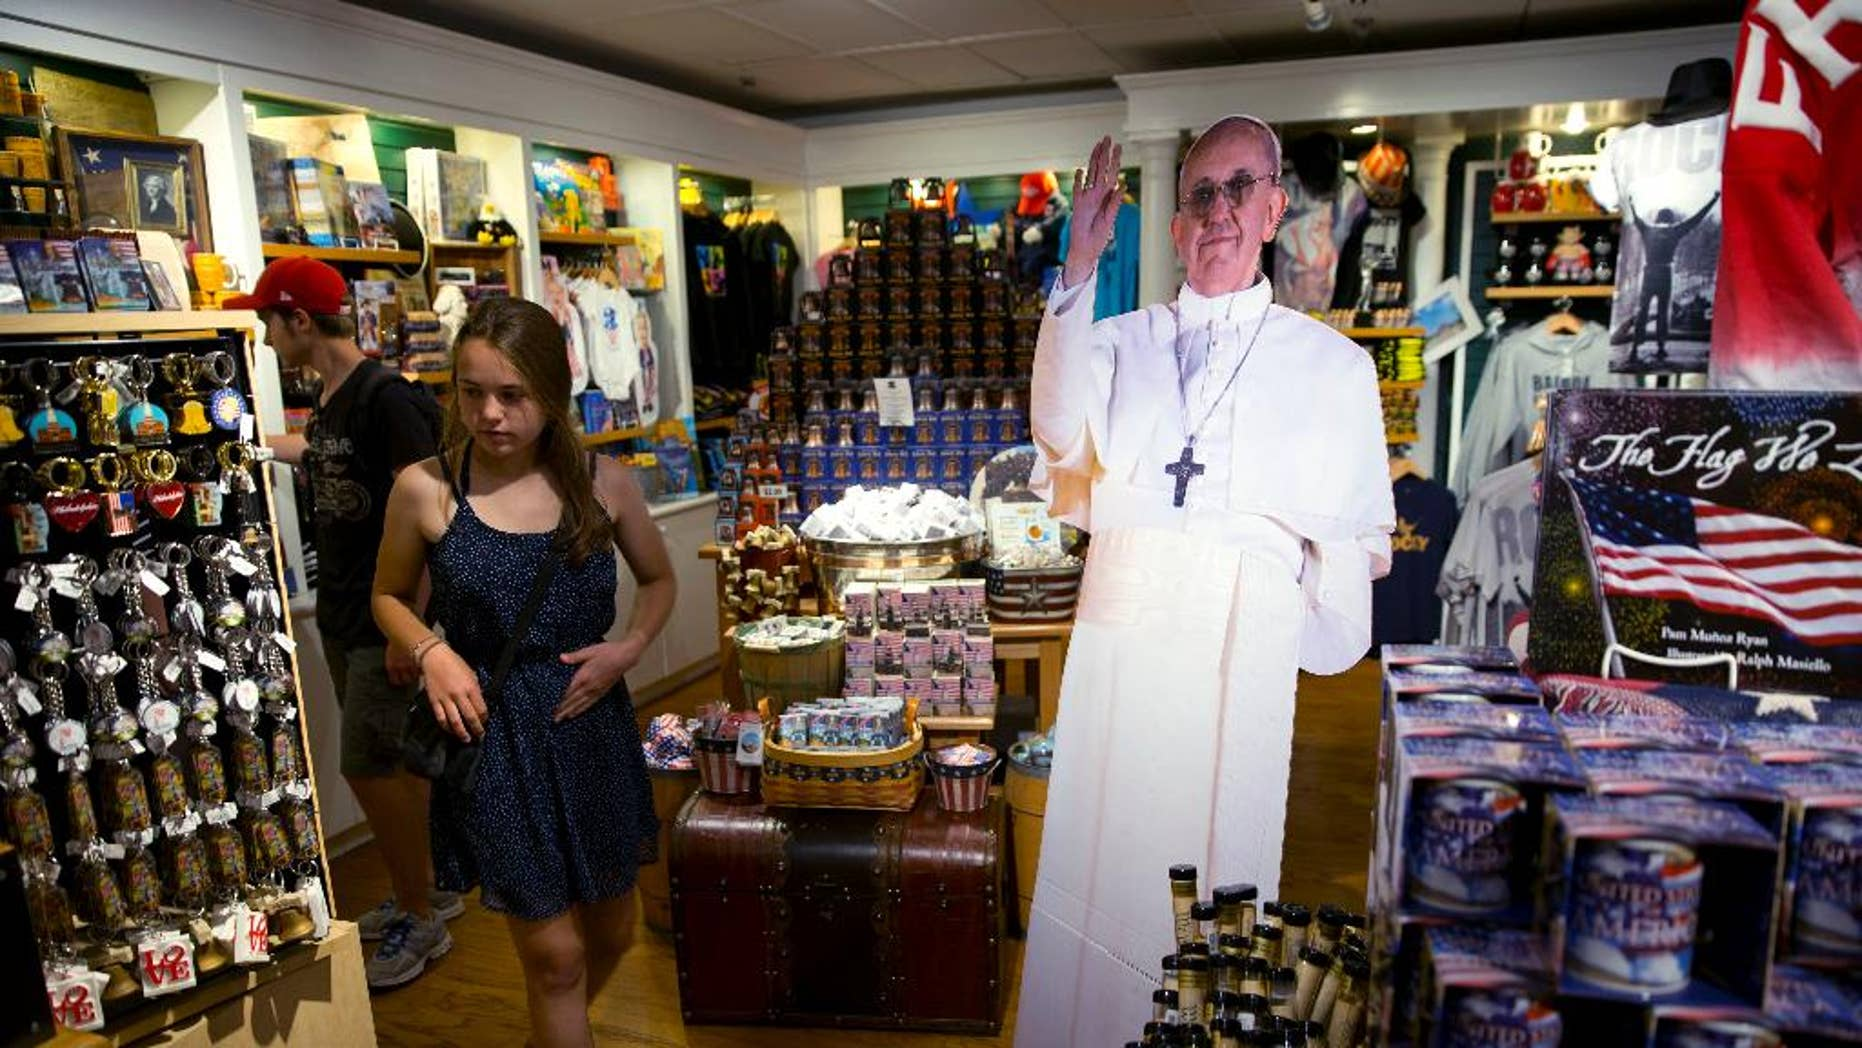 In this Monday, Aug. 10, 2015, photo, a tourist passes cutout of Pope Francis at Making History, a Philadelphia themed gift shop Philadelphia. The cutouts have been popping up in areas around the region weeks ahead of pope's scheduled visit. (AP Photo/Matt Rourke)